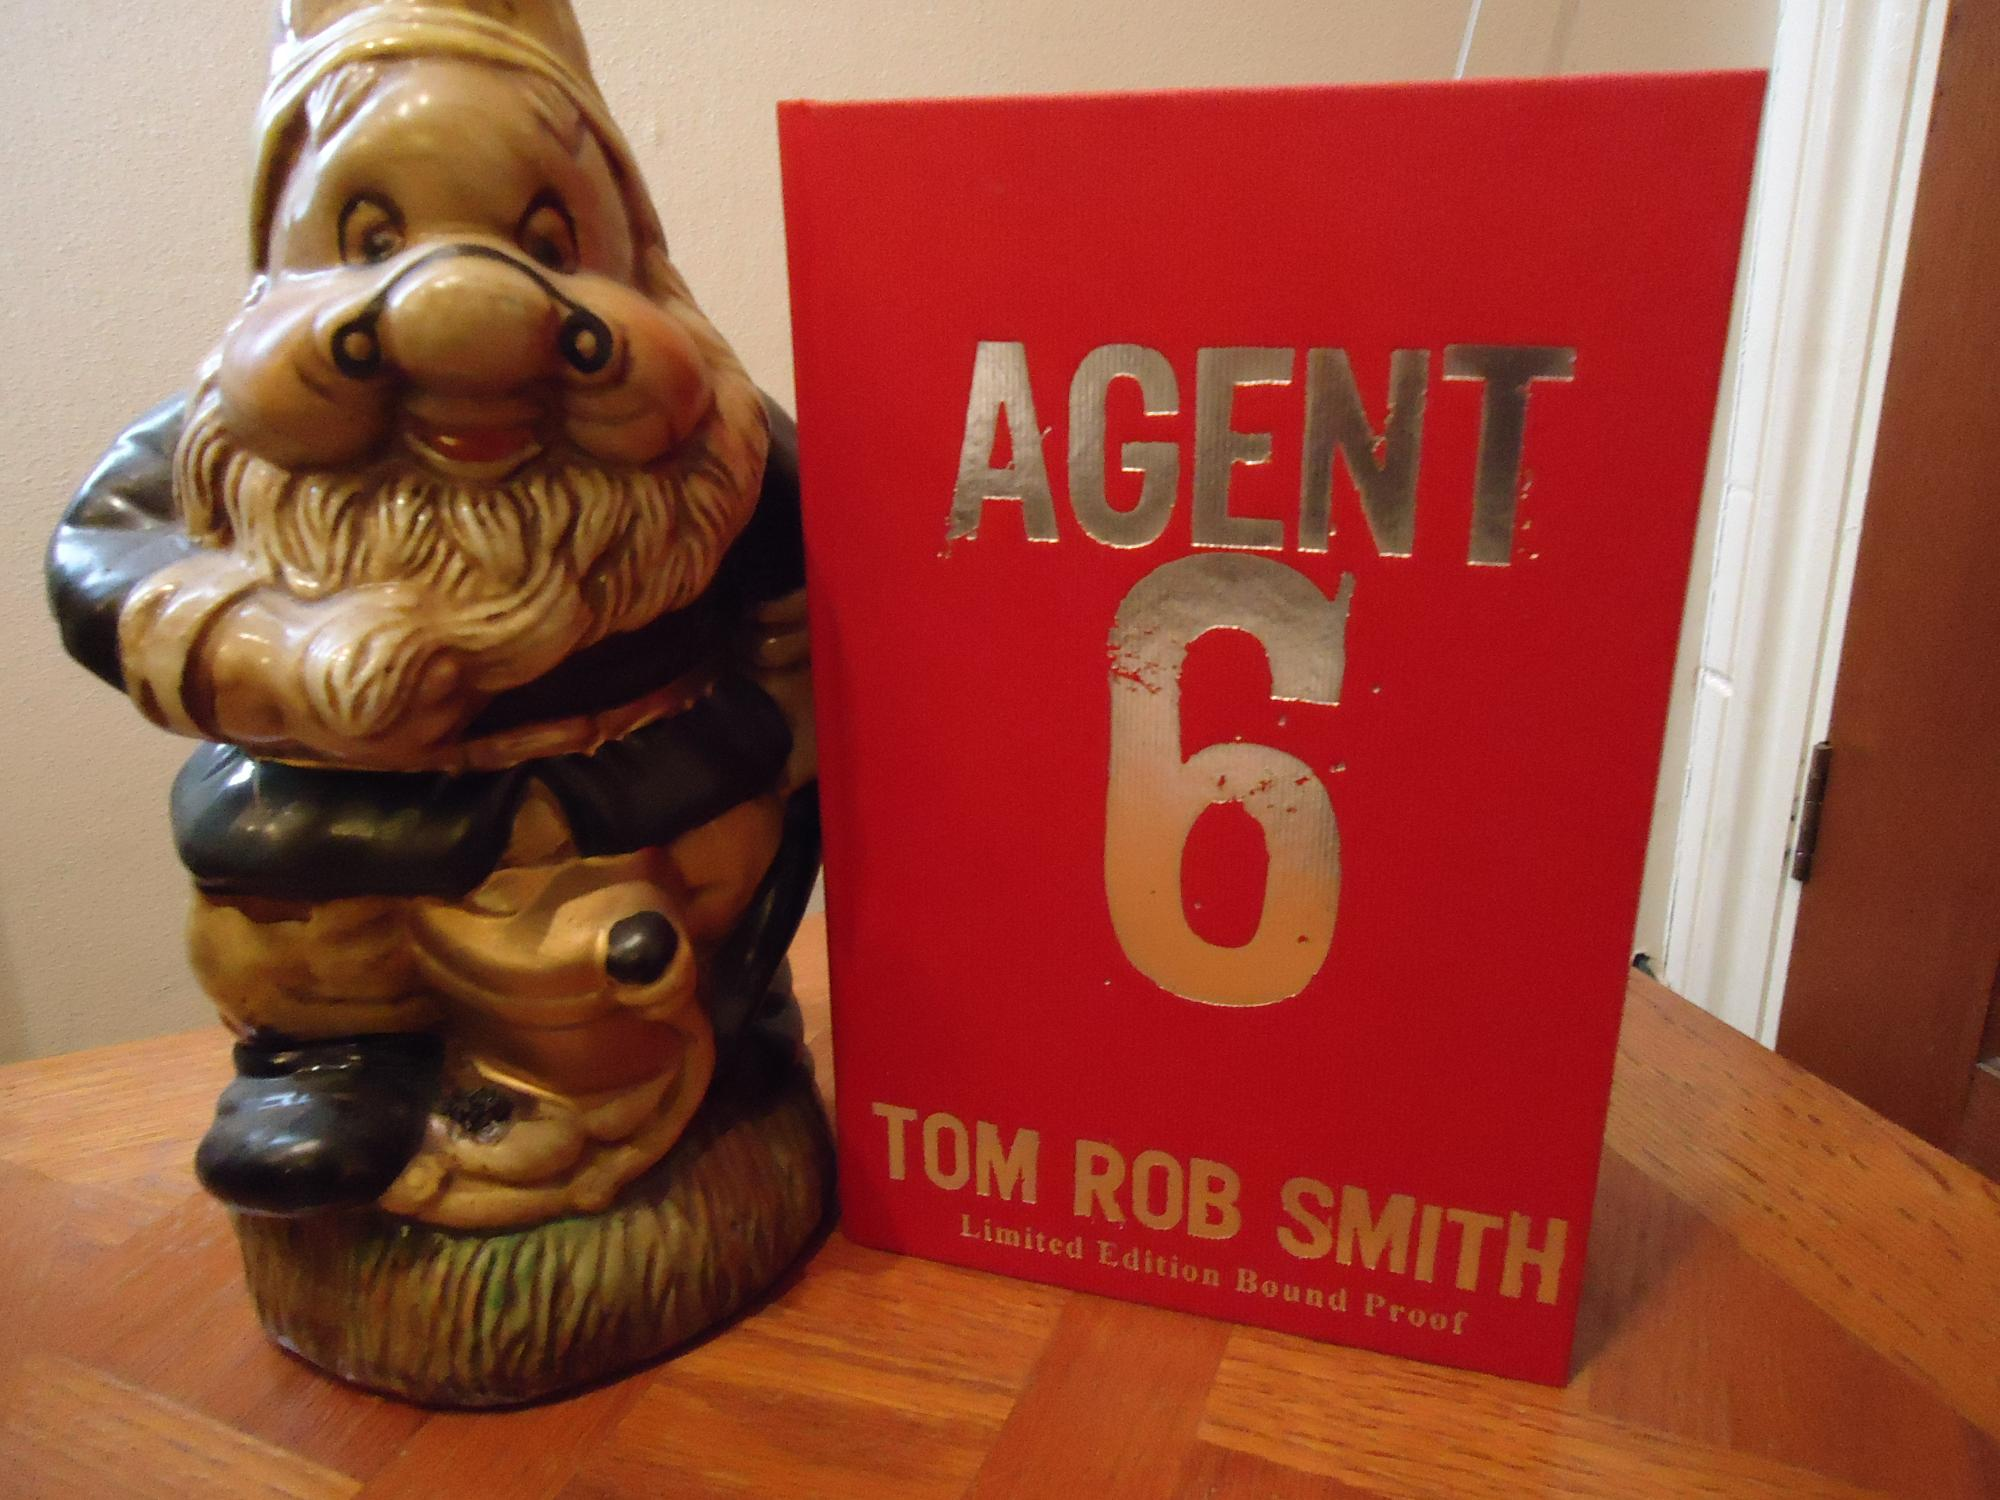 AGENT 6+++A SUPERB SIGNED UK UNCORRECTED HARDBACK PROOF COPY+++LIMITED NUMBERED EDITION 131 OF 800+++FIRST EDITION FIRST PRINT+++ - TOM ROB SMITH (SIGNED AND NUMBERED LIMITED EDITION)